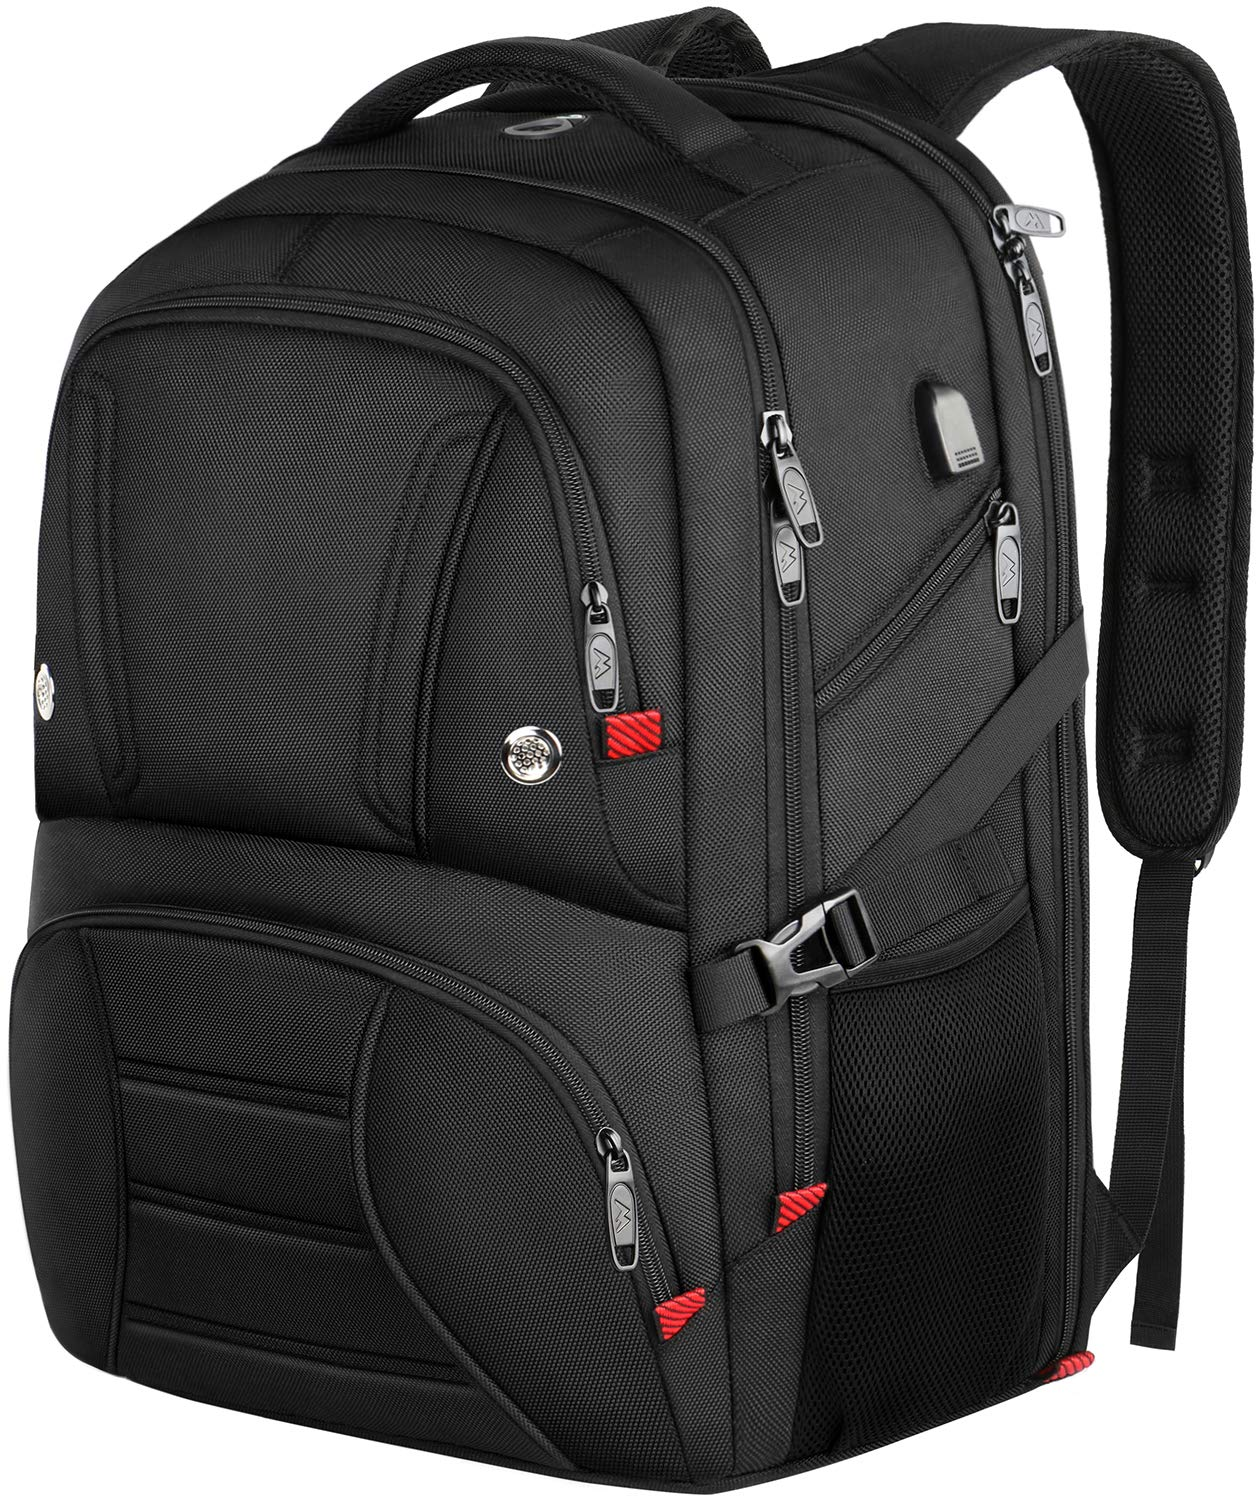 Deegotech Extra Large Backpack for Men, 18.4 Laptop Backpack Durable Heavy Duty School Backpack with USB Port, TSA Friendly Water Resistant Travel Backpack Big College Bag Business Backpacks,Black